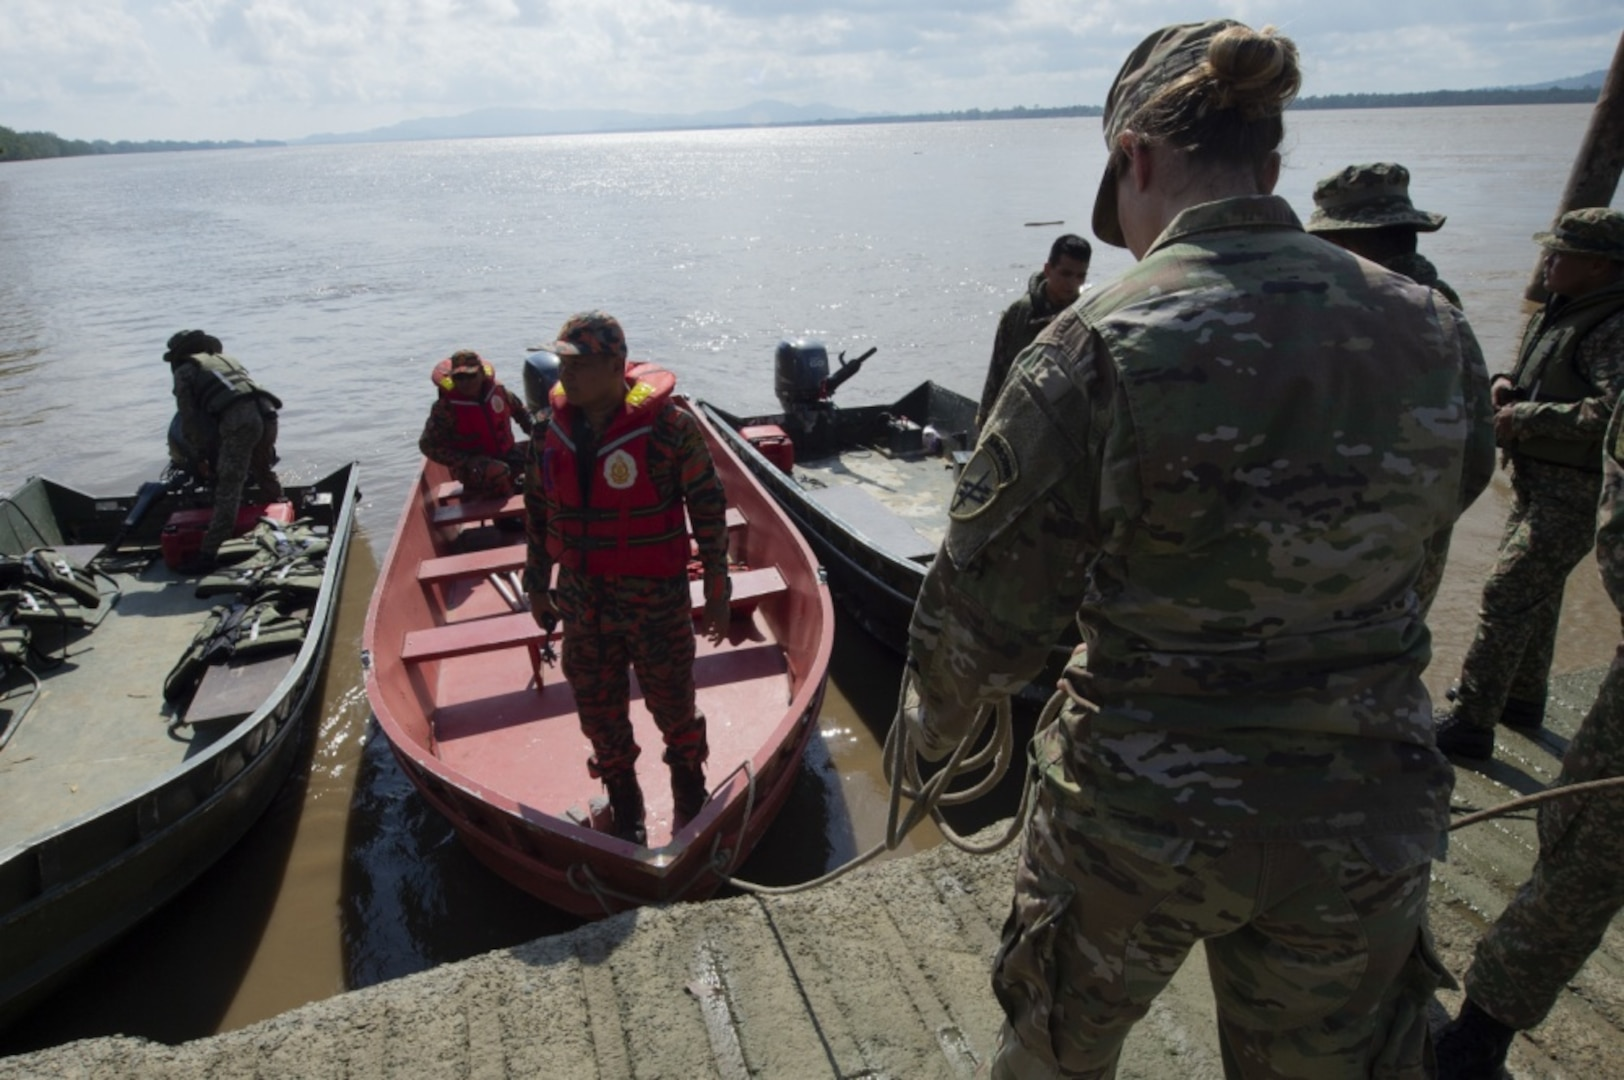 KUCHING, Malaysia (April 7, 2019) – U.S. Army Capt. Perry Foster, assigned to Pacific Partnership 2019, assists Malaysian first responders as they dock their boats during a field training exercise. The event gives local civil response units an opportunity to practice their reaction to a simulated flood disaster with the assistance of partner nation military personnel. Pacific Partnership, now in its 14th iteration, is the largest annual multinational humanitarian assistance and disaster relief preparedness mission conducted in the Indo-Pacific. Each year the mission team works collectively with host and partner nations to enhance regional interoperability and disaster response capabilities, increase security and stability in the region, and foster new and enduring friendships in the Indo-Pacific. (U.S. Navy photo by Mass Communication Specialist 2nd Class William Berksteiner)